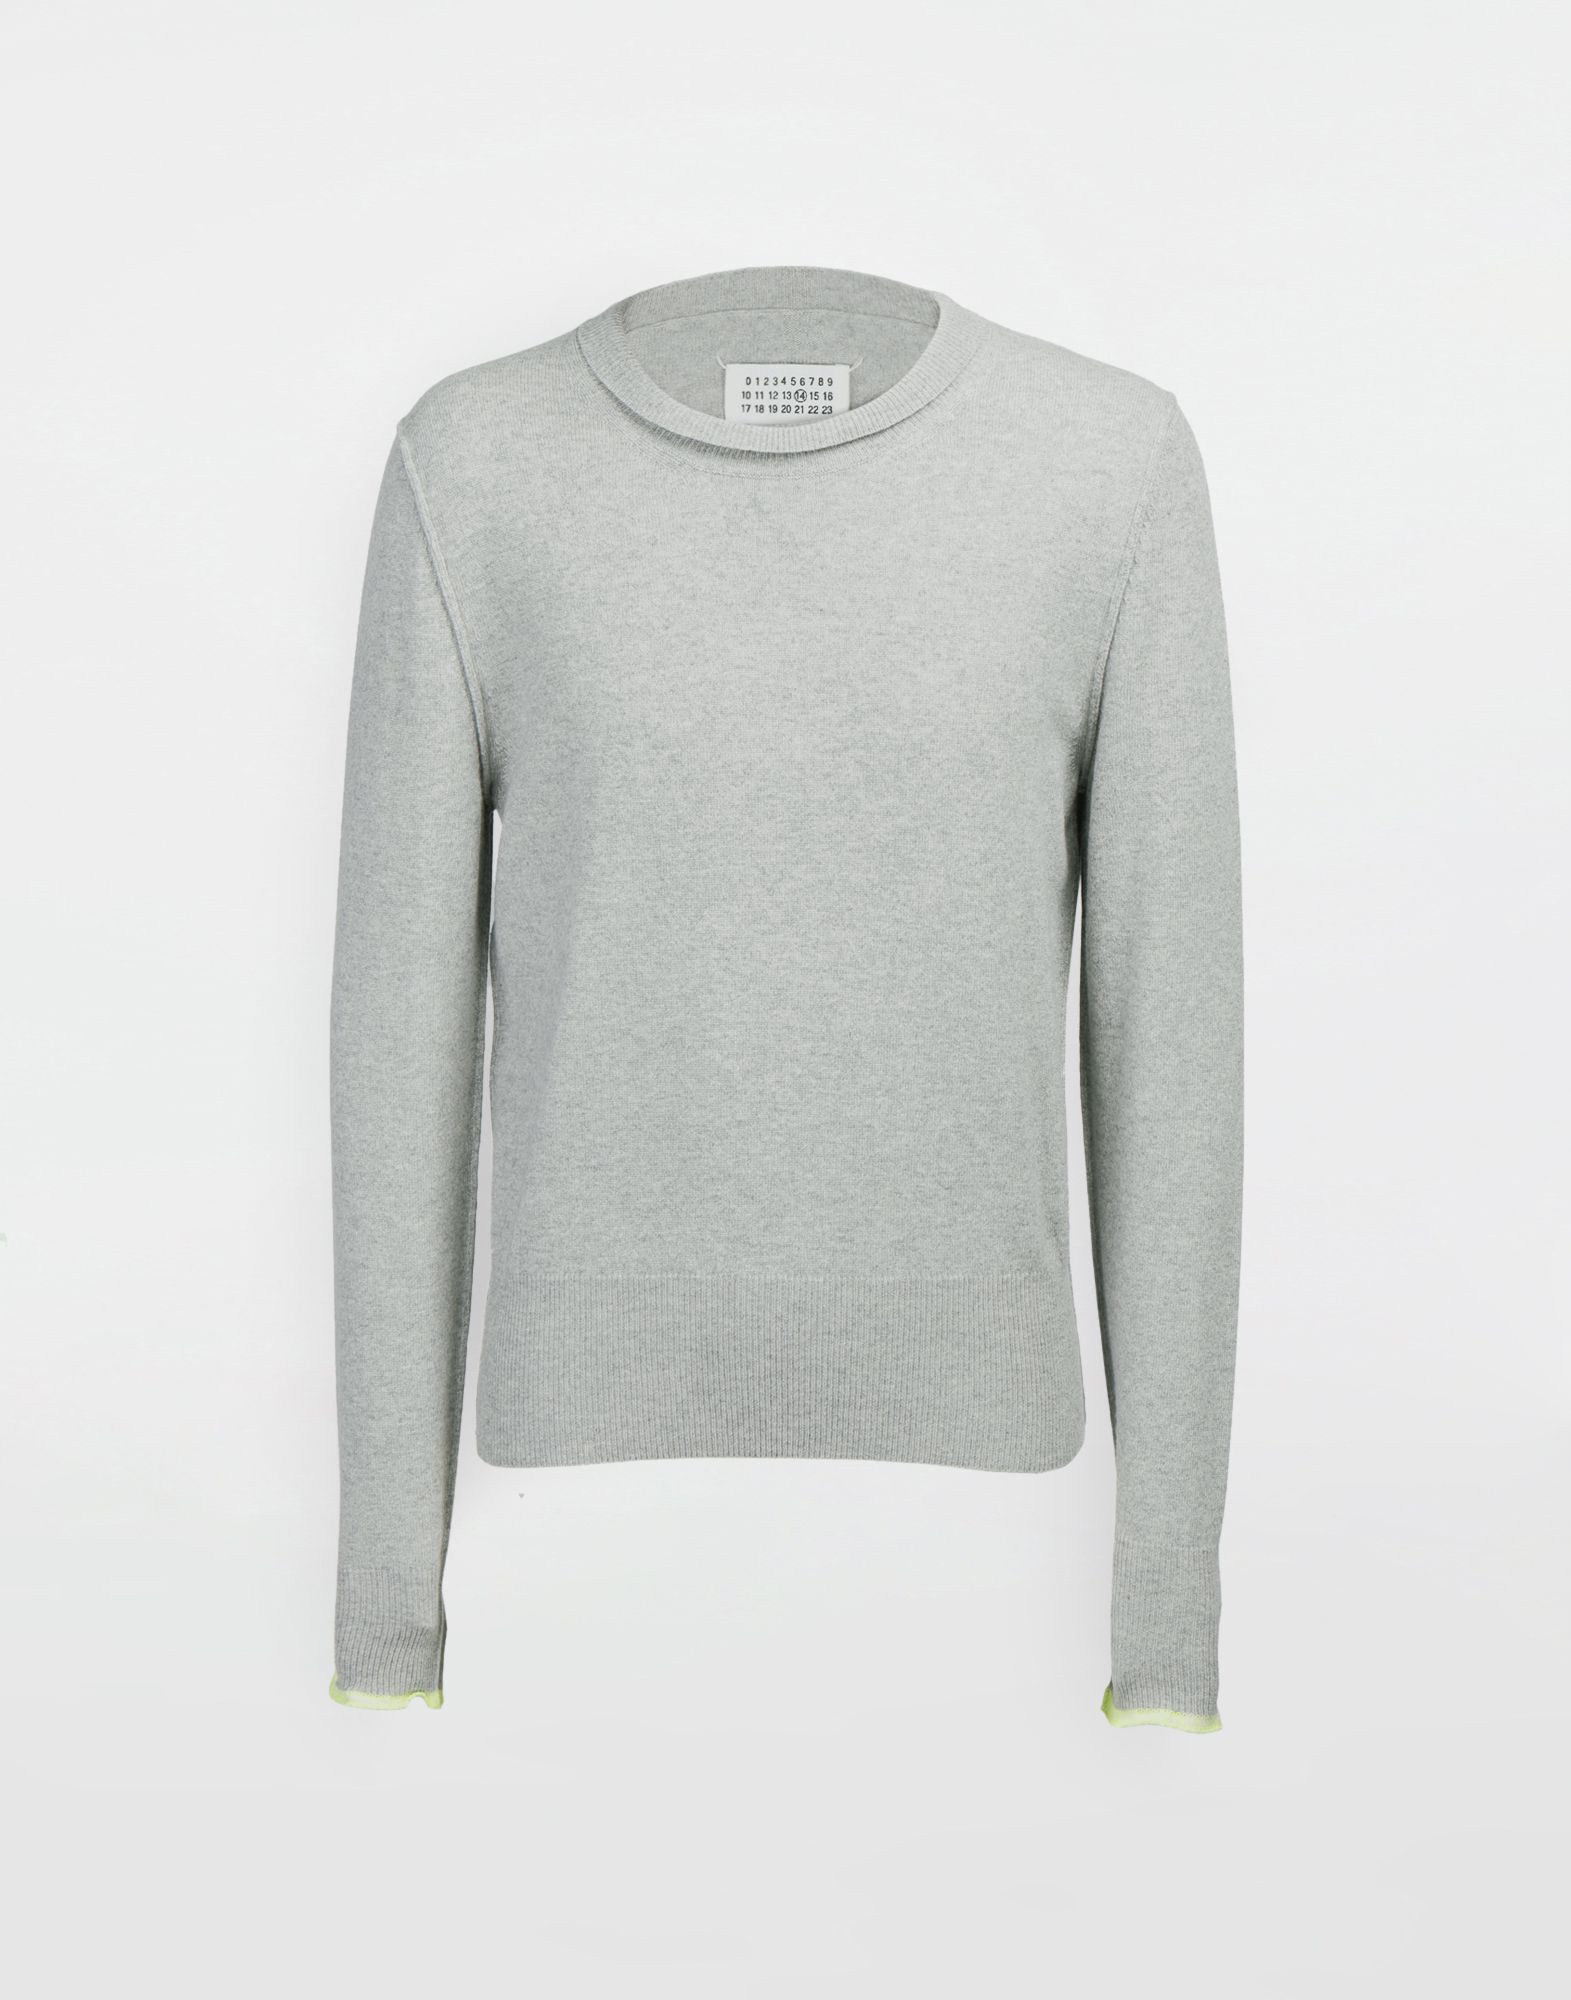 MAISON MARGIELA Cast off knit pullover Crewneck sweater Man f